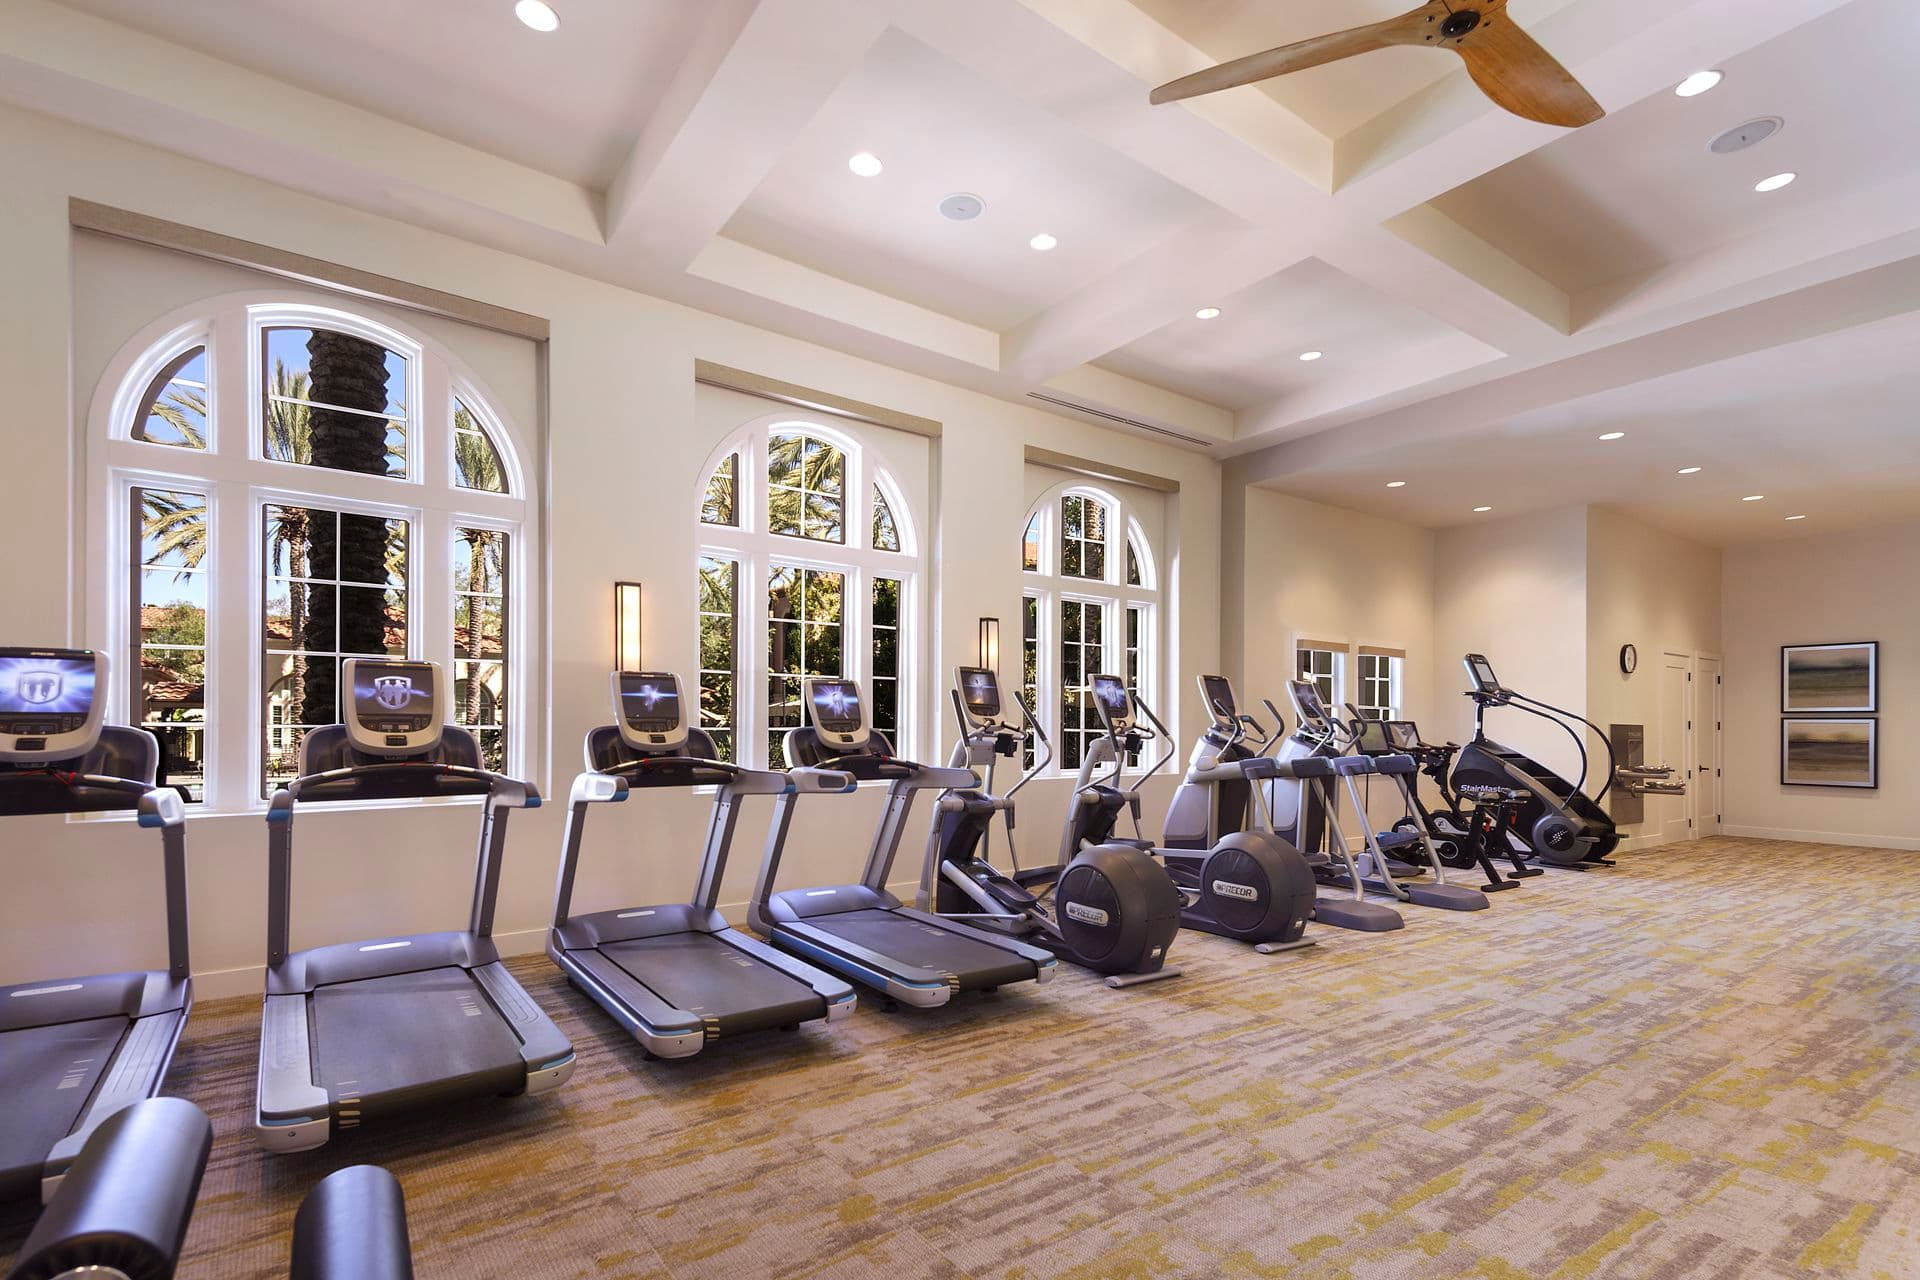 Interior view of fitness center at Quail Hill Apartment Homes in Irvine, CA.